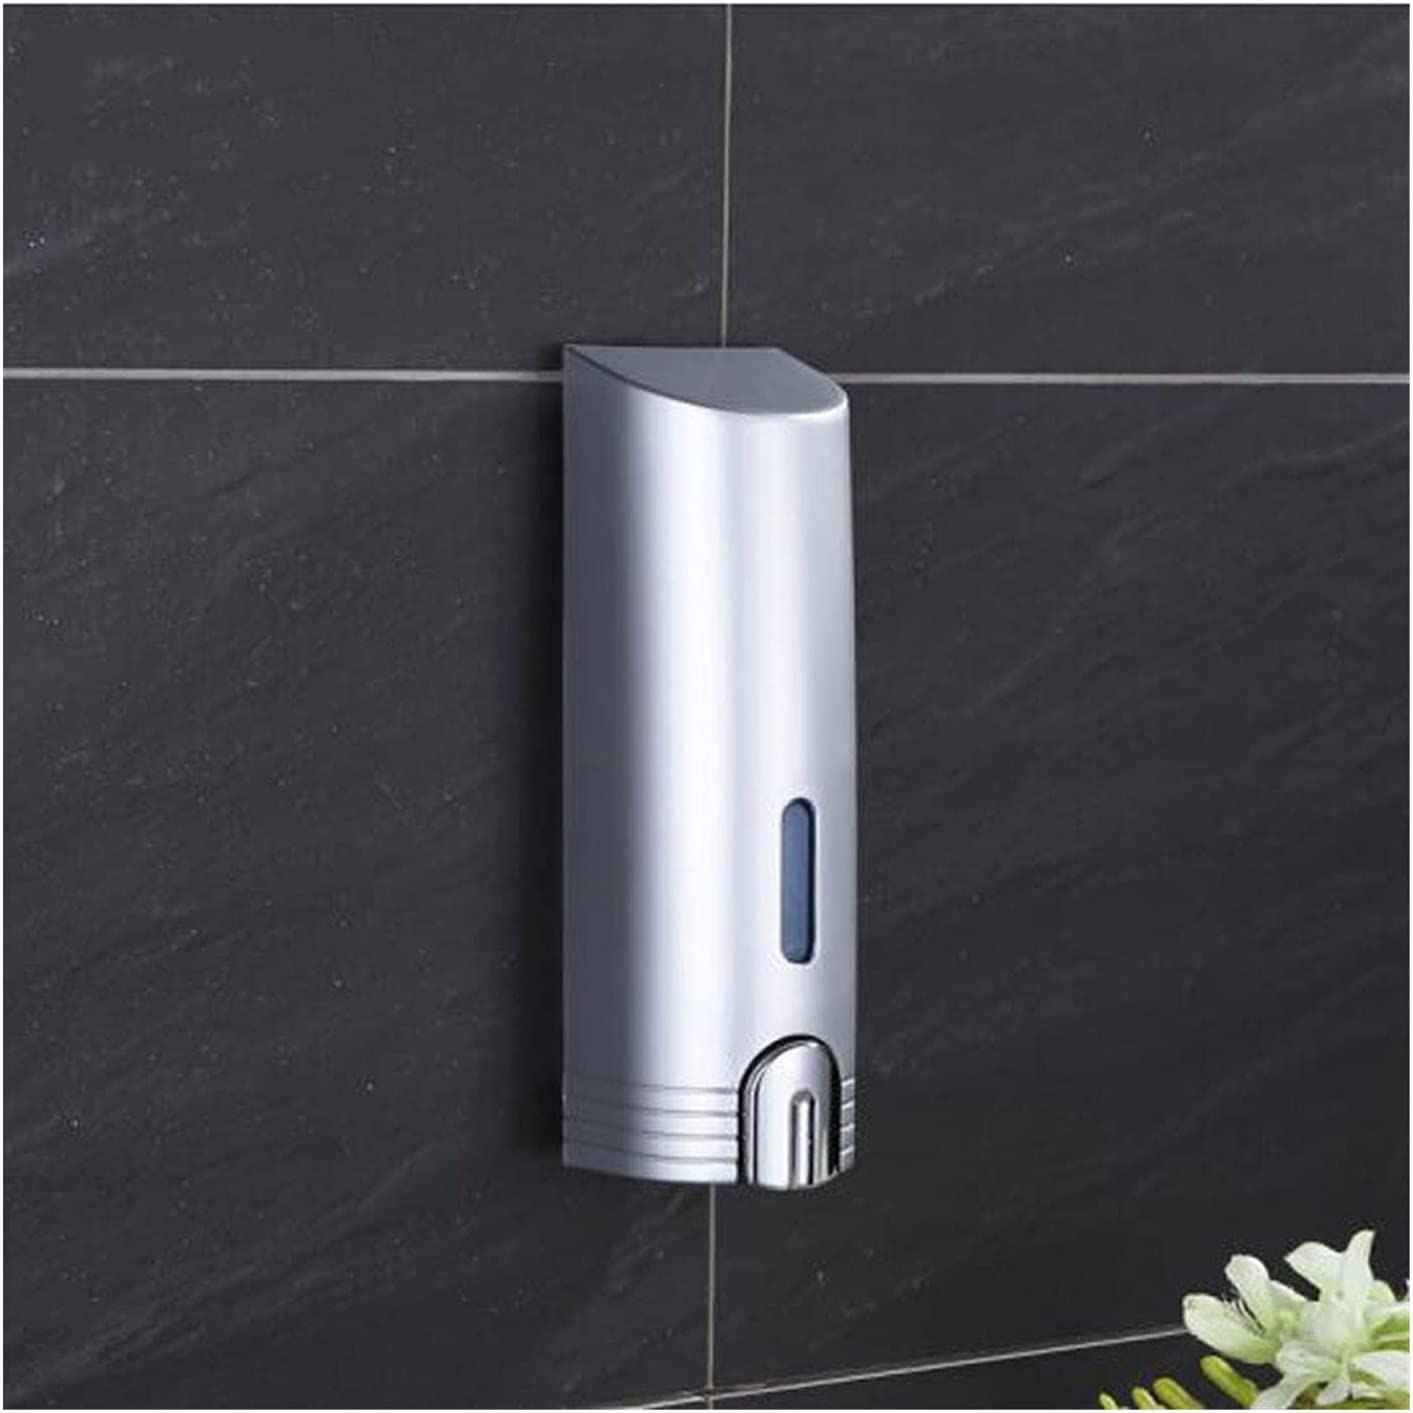 ZQDMBH New products world's highest quality popular Soap Recommended Dispenser Dispens Kitchen Liquid